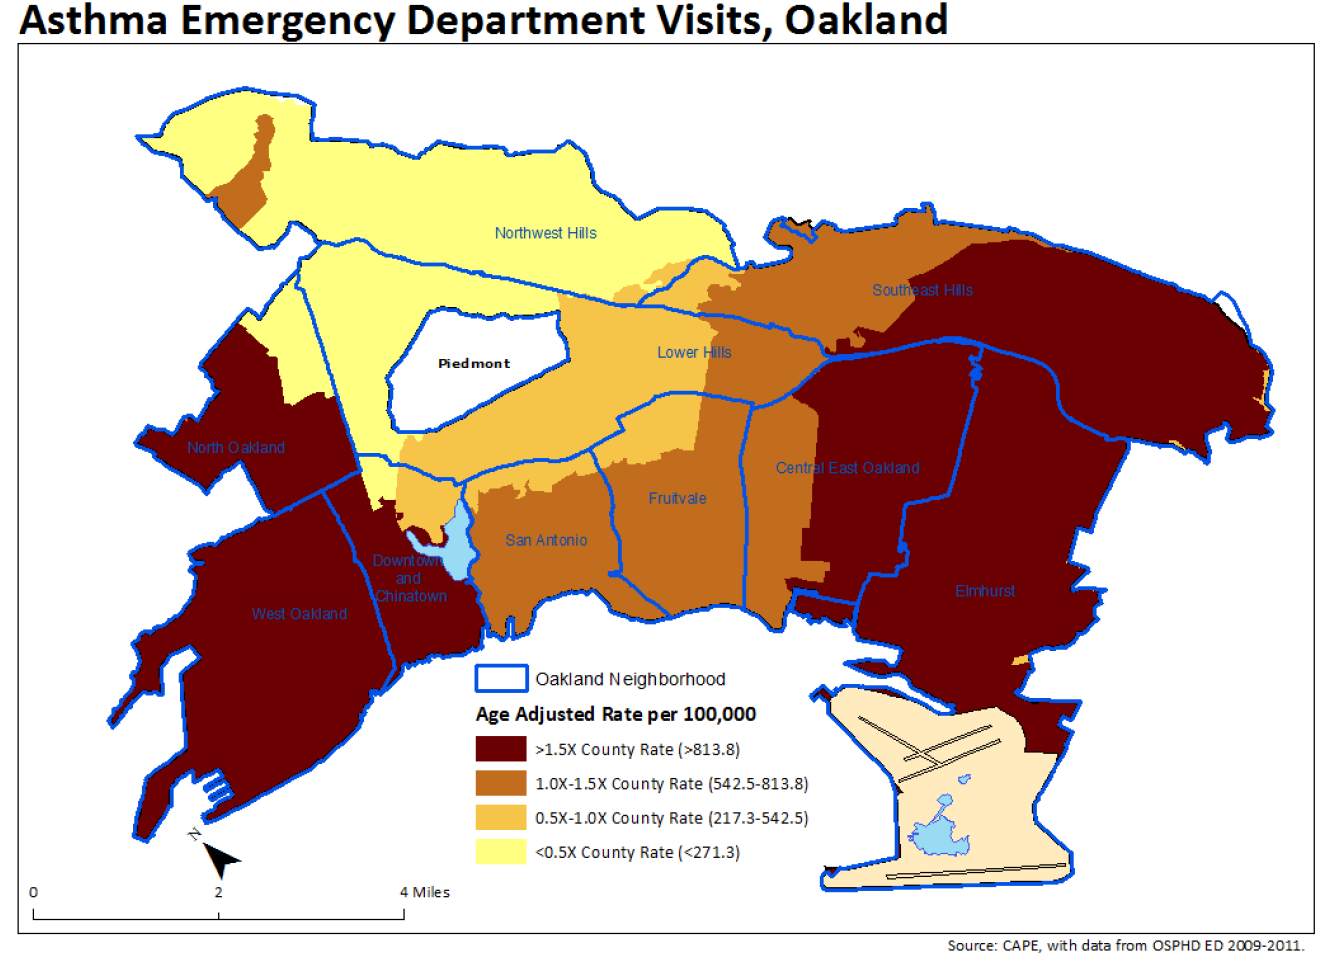 asthma emergency visits